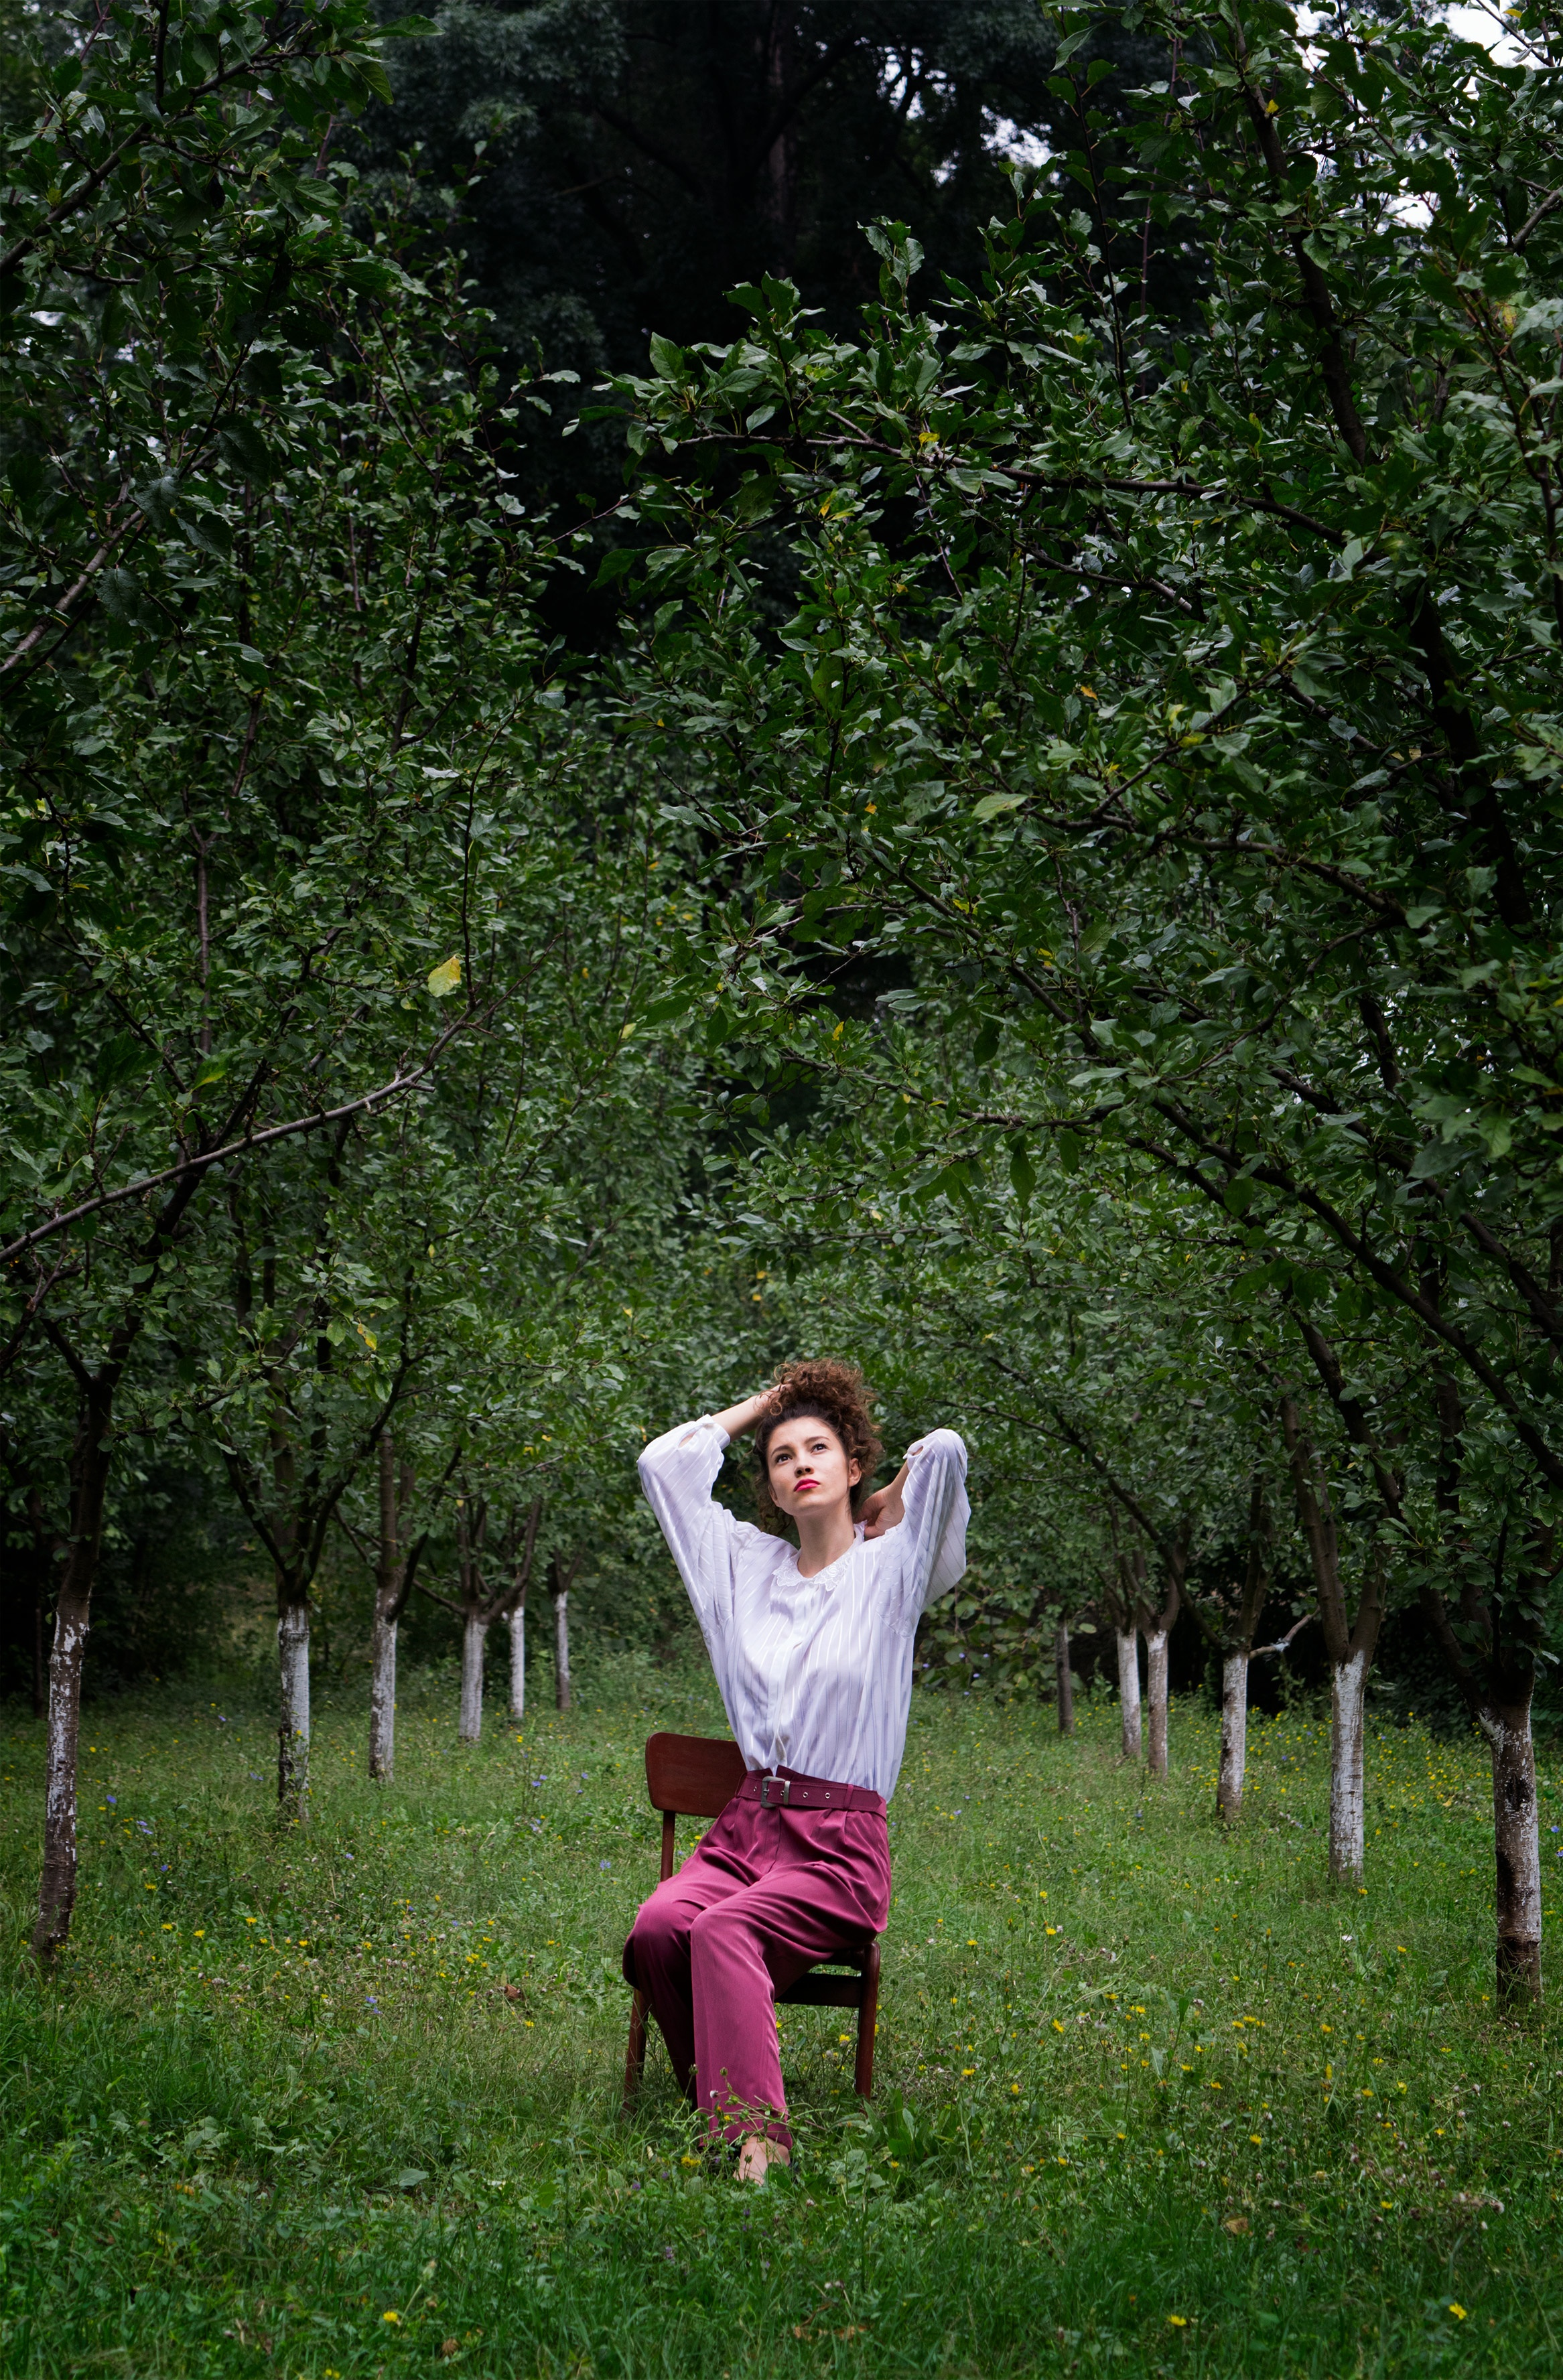 Model, Tree, Woman, Nature, Green, HQ Photo